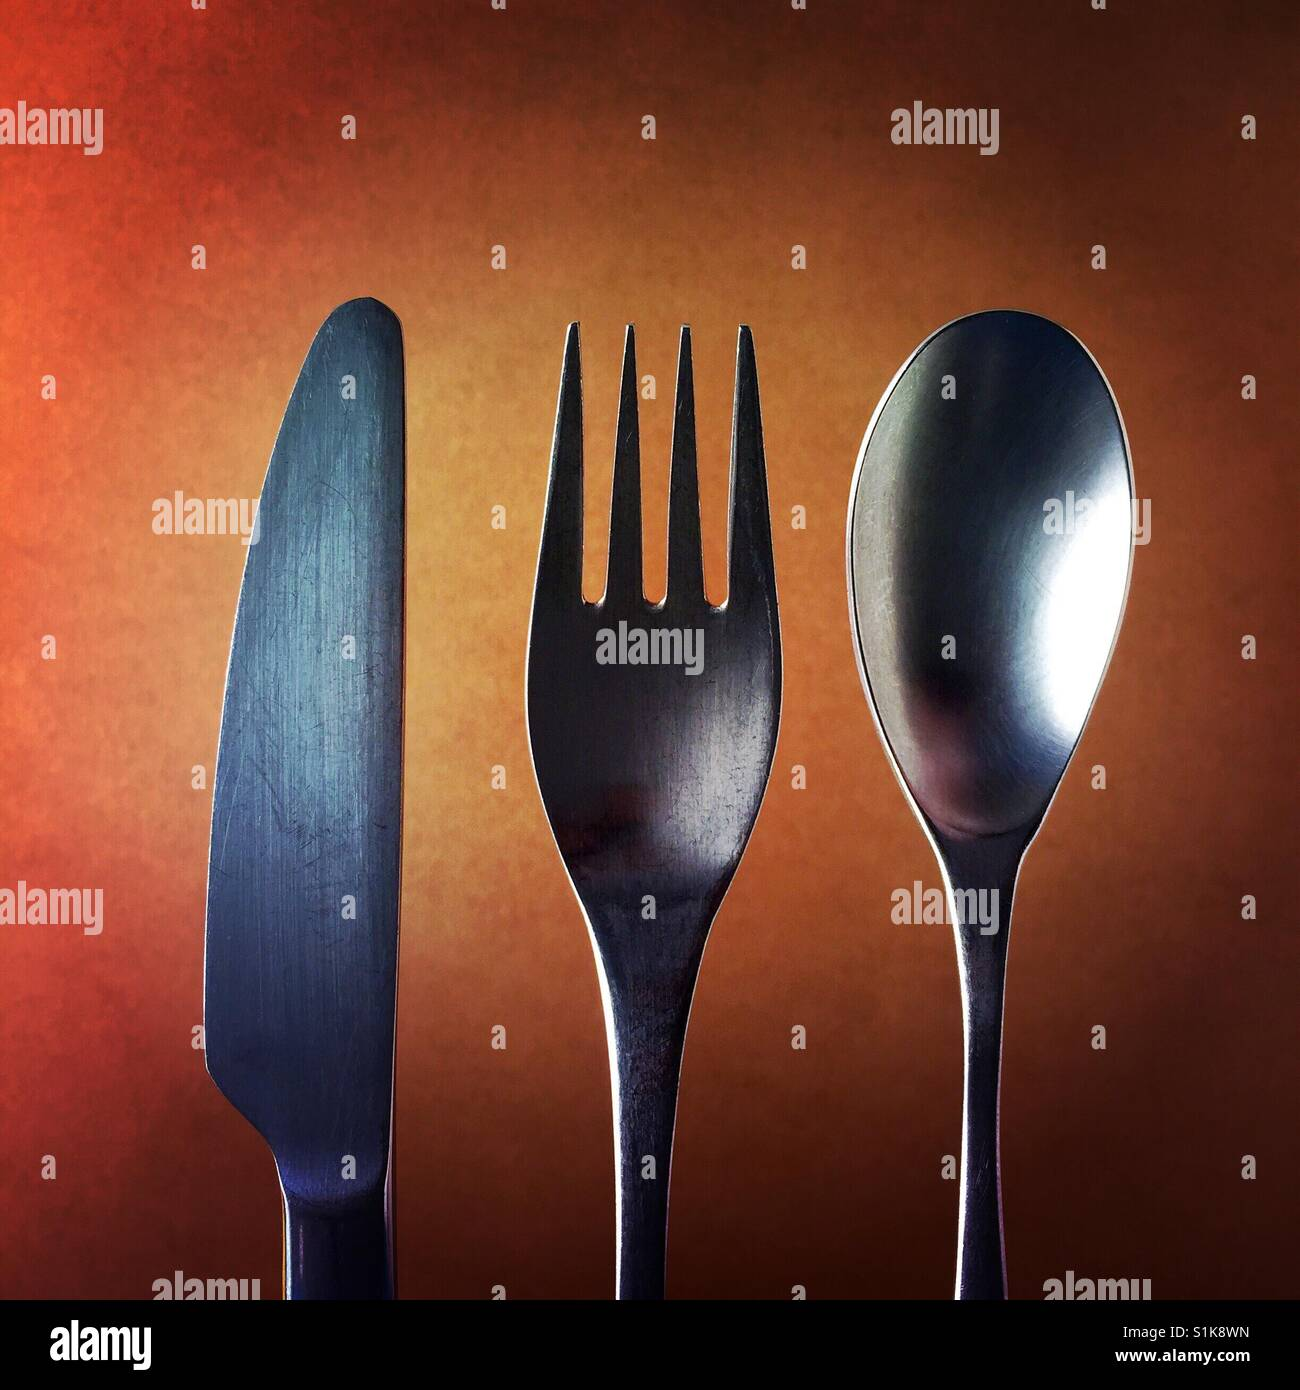 A close up shot of a knife and a fork and a spoon above a brown background - Stock Image